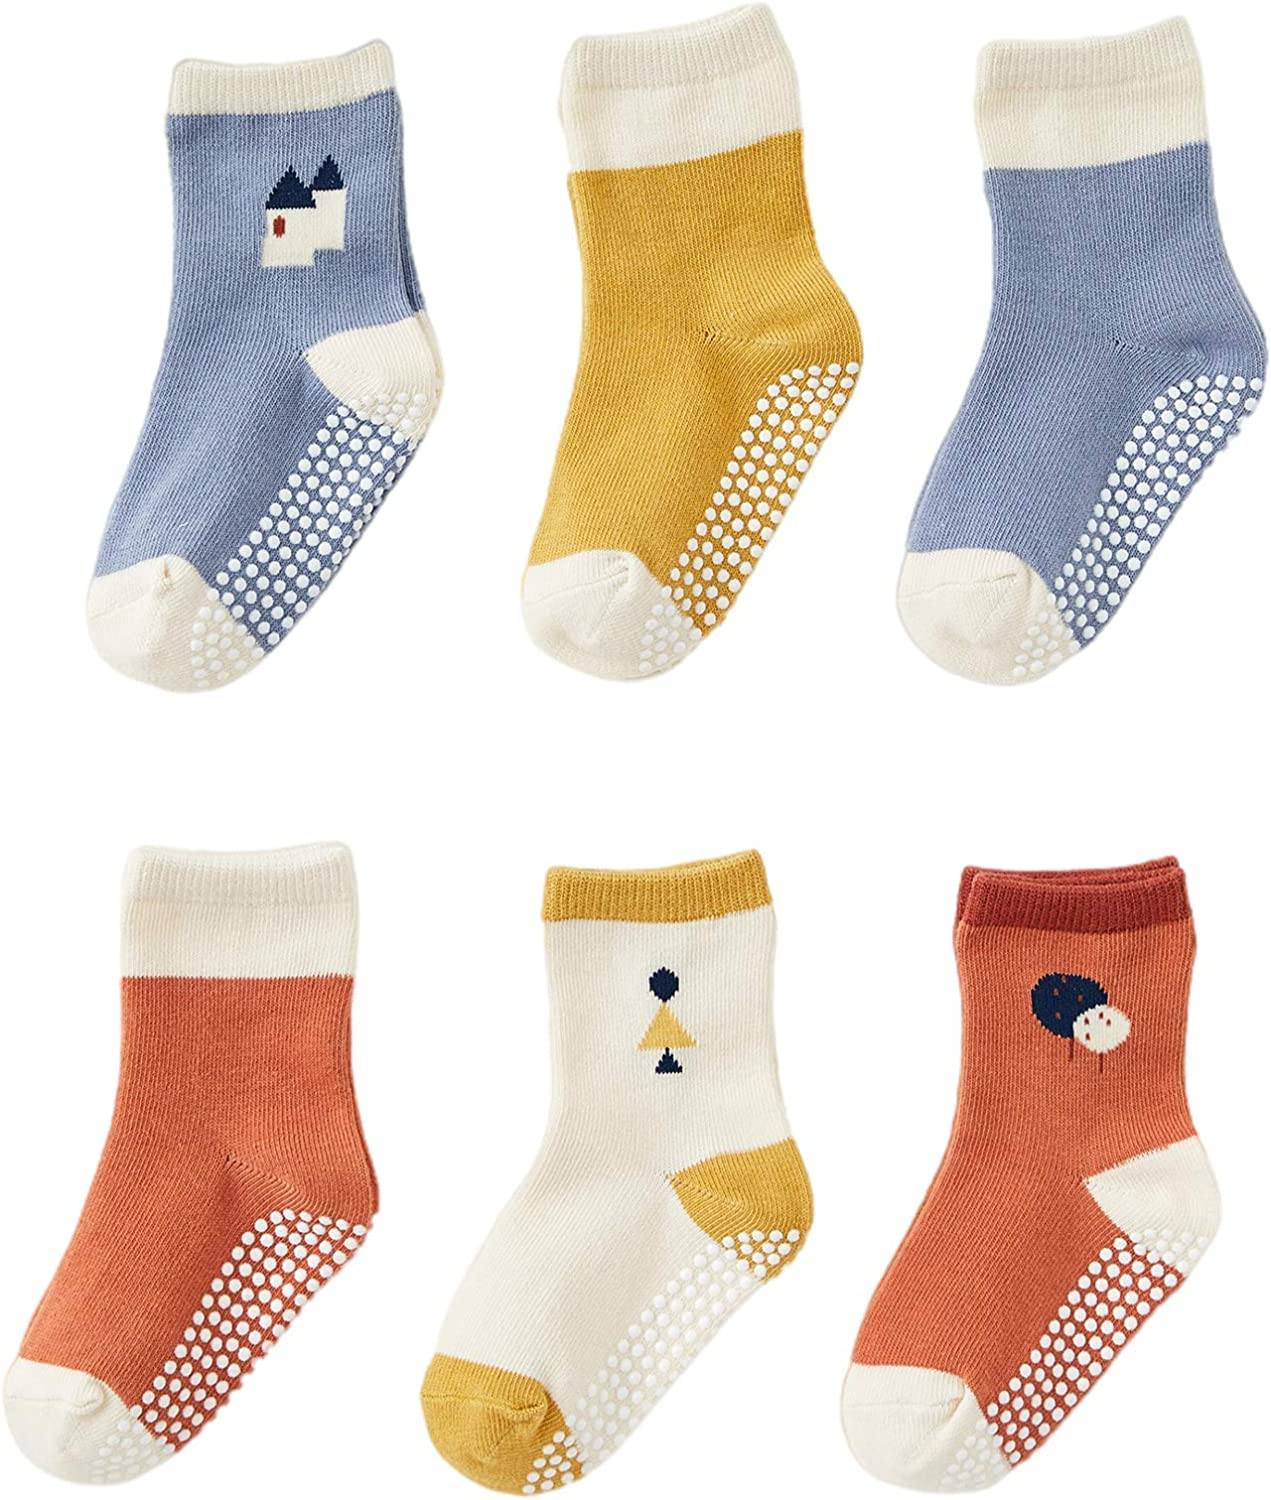 DuoMiaoMiao Baby Socks for Boys and Girls, 6 Pairs Anti-slip Toddler Socks, Cotton Baby Walkers for Baby